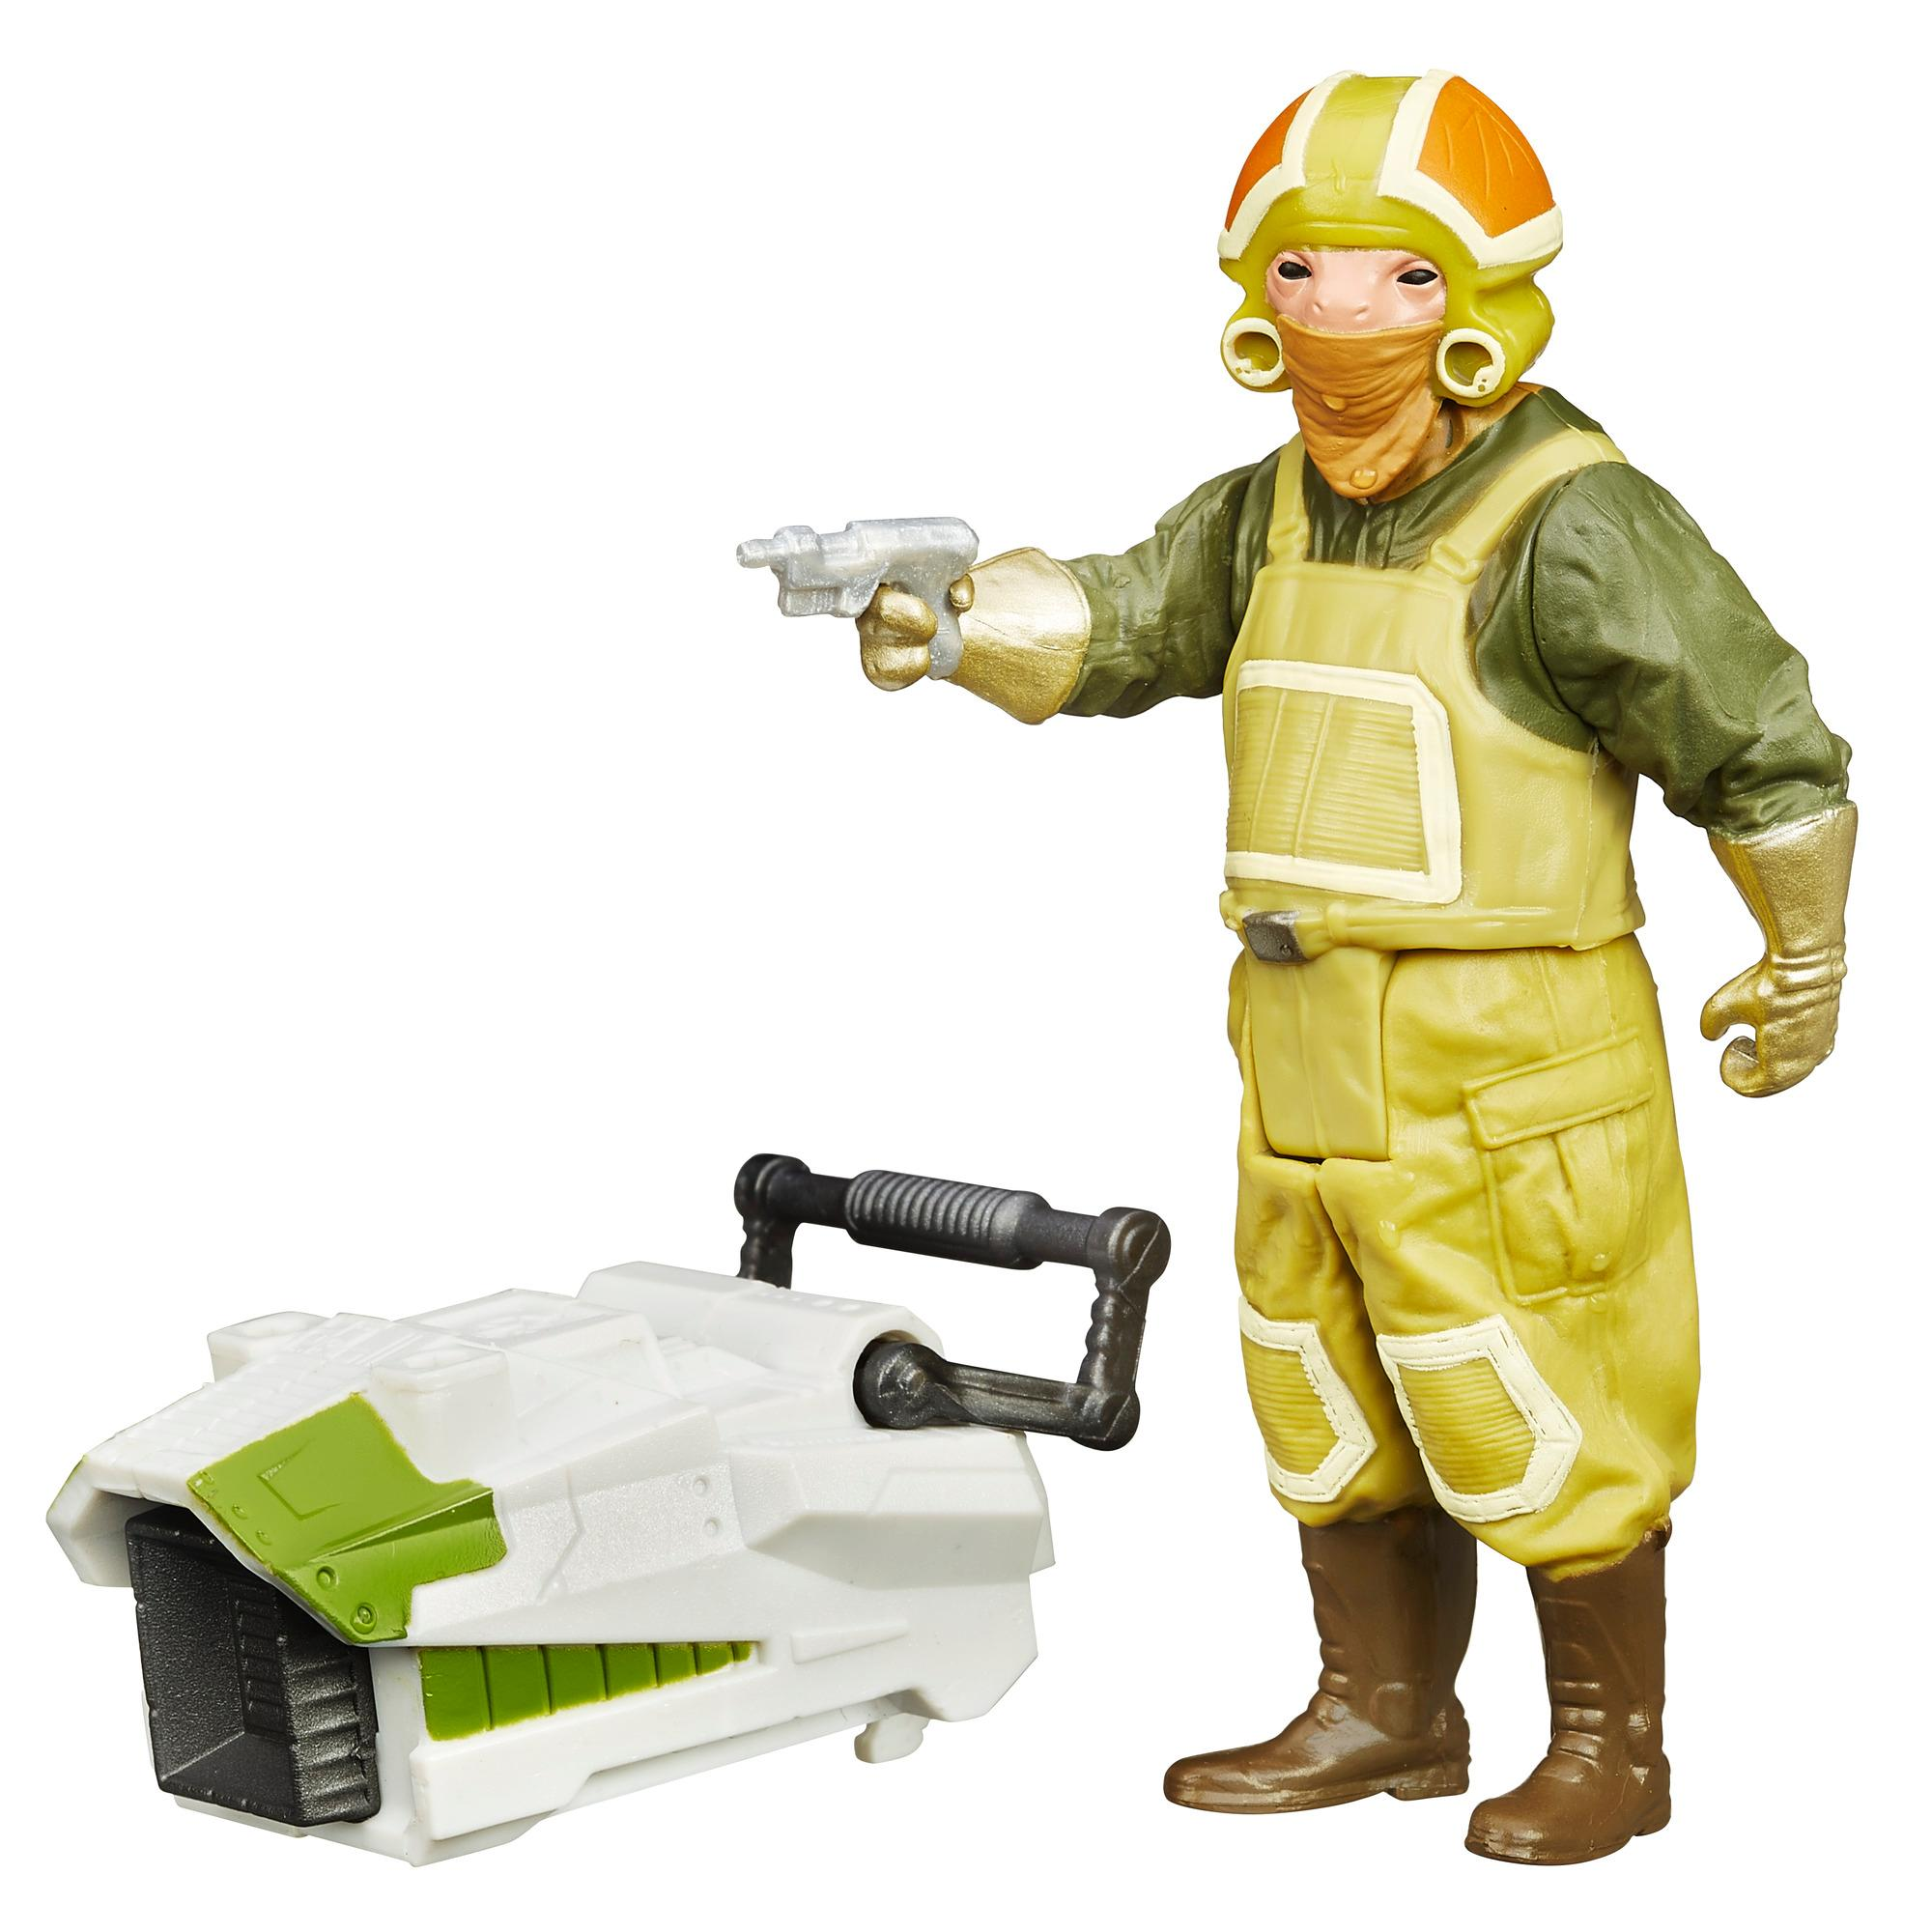 Star Wars The Force Awakens 3.75-Inch Figure Forest Mission Goss Towers